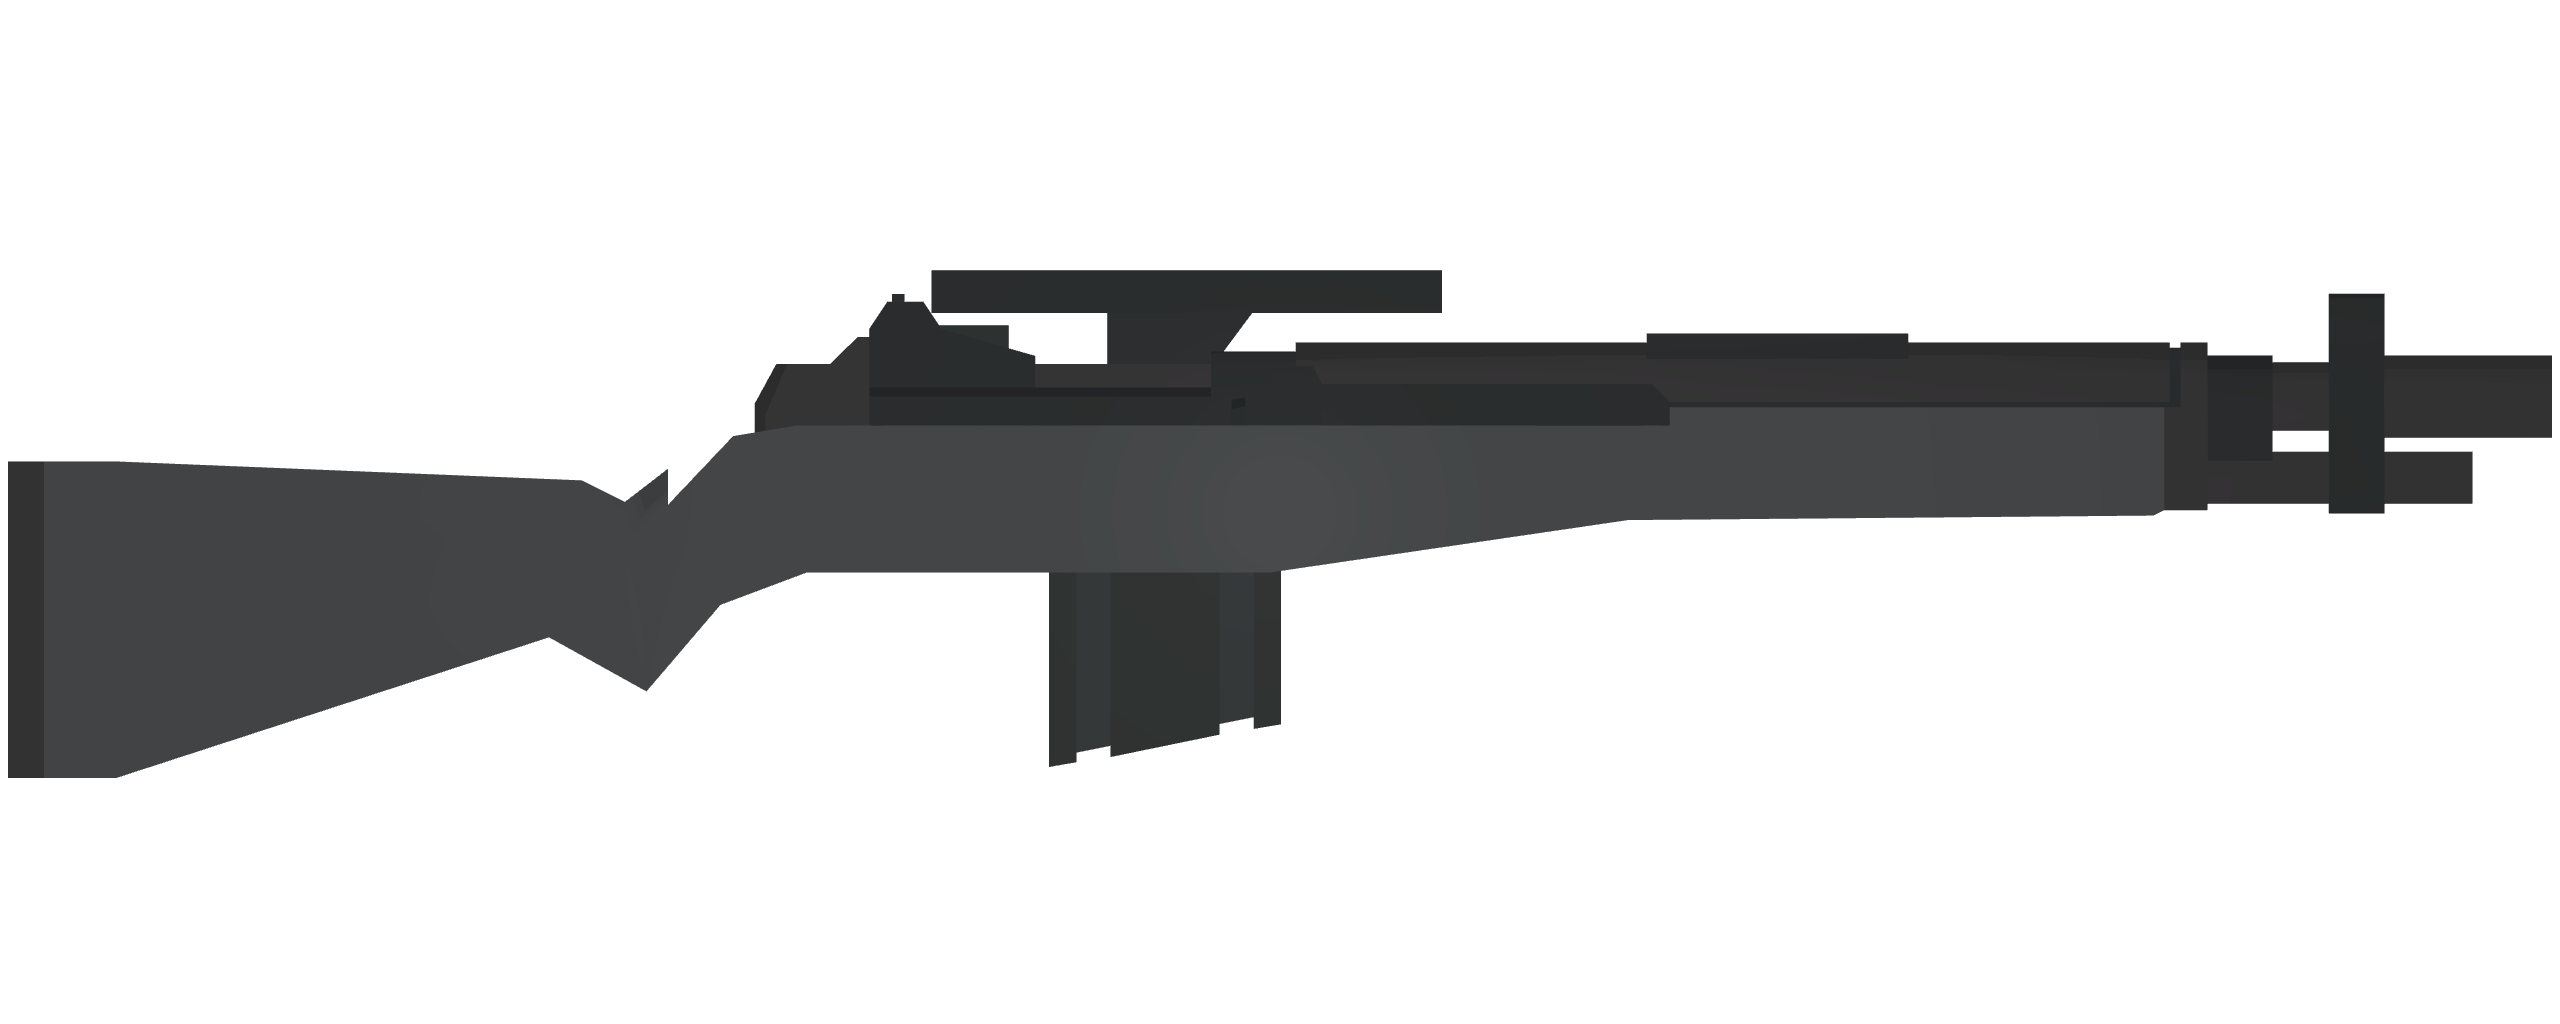 Unturned - All Weapons ID's for Uncreated Warfare Mods - USA Weapons - 277A56F